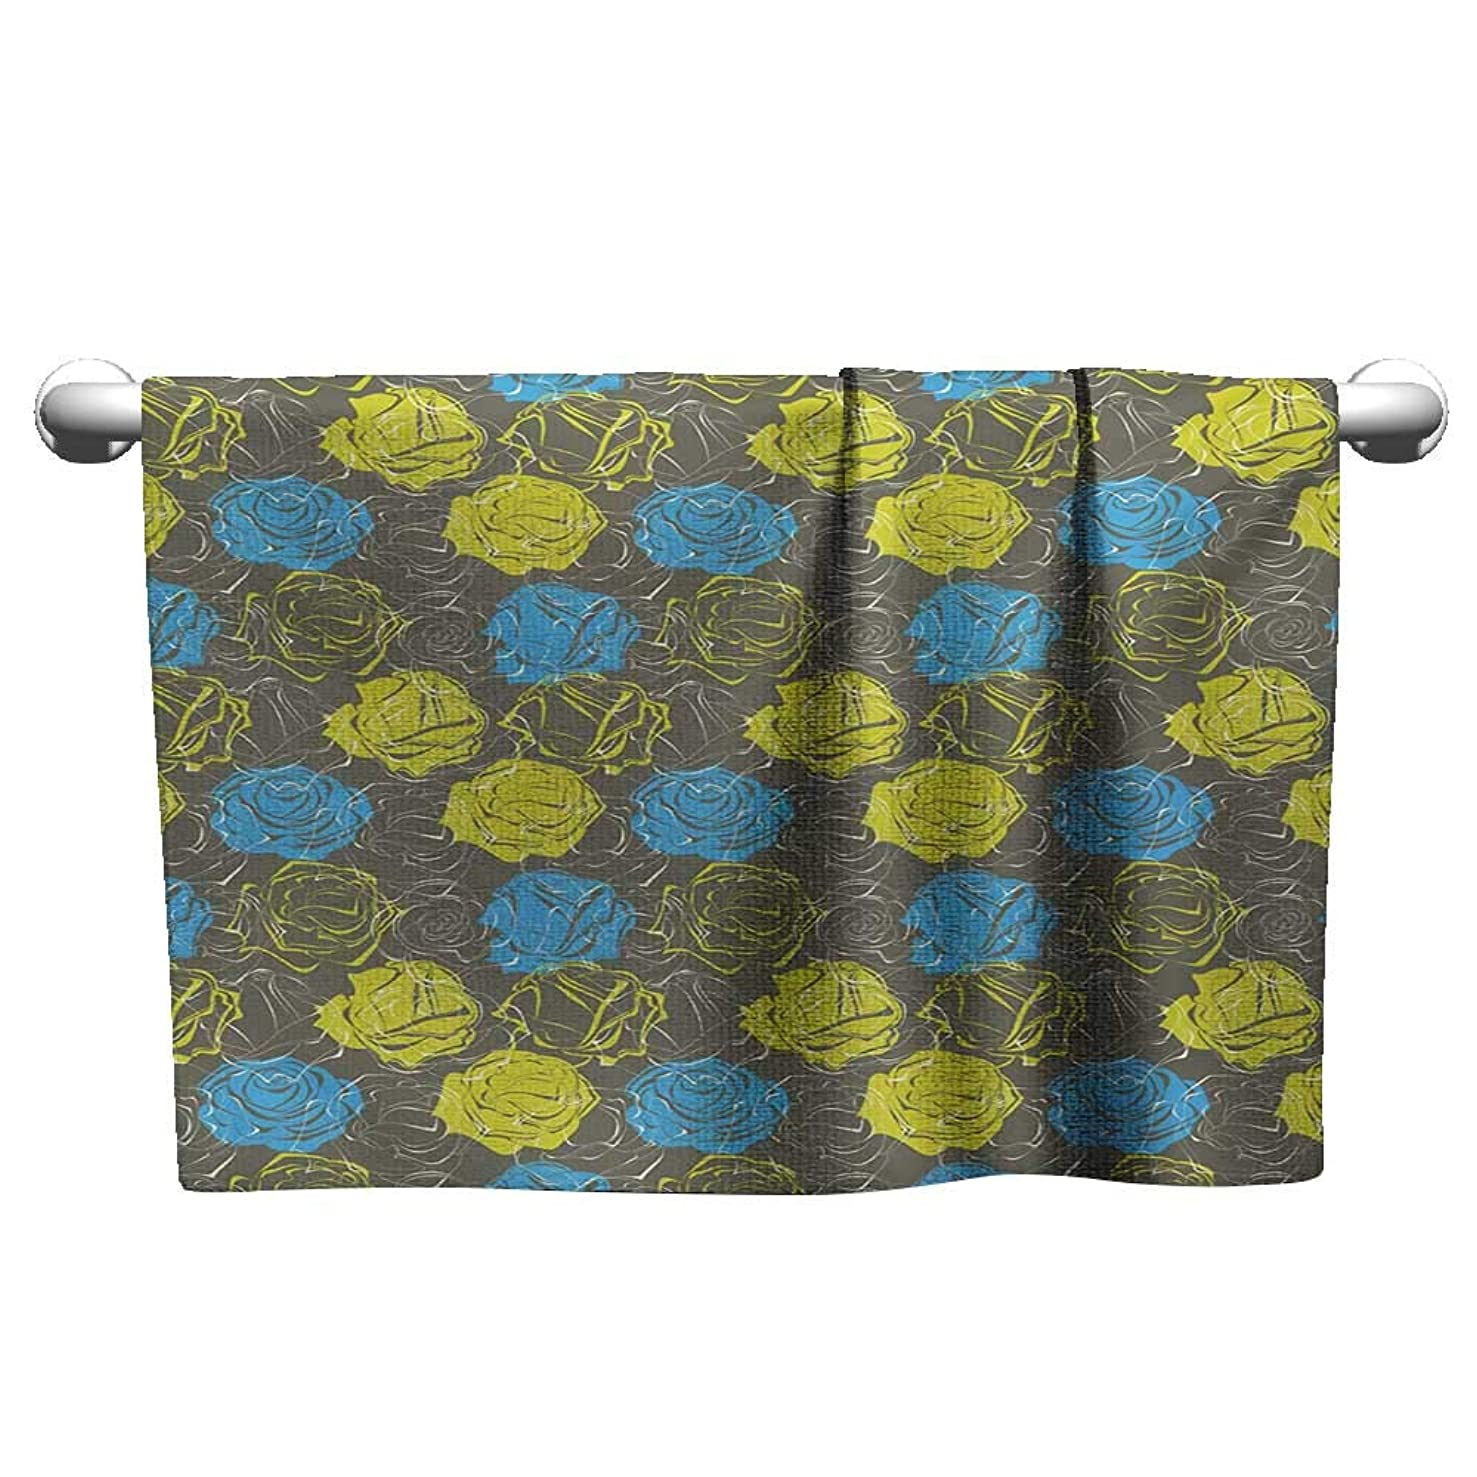 Floral,Wash Towels Blossoming Rose Petals Romantic Bouquet with Vintage Inspirations Microfiber Towels for Body Azure Blue Yellow Green Grey W 20